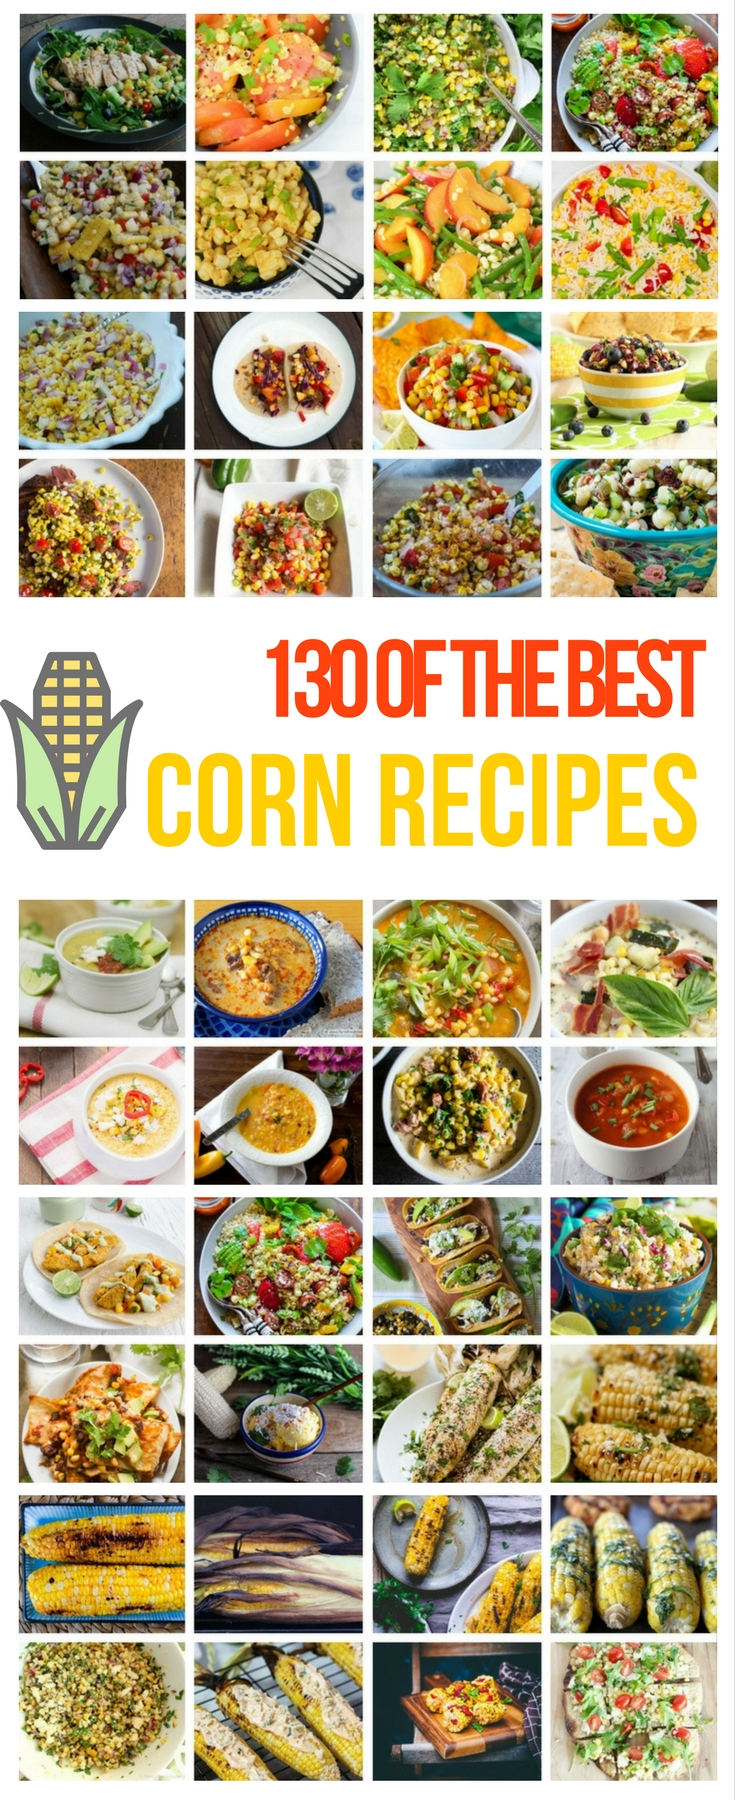 Have You Ever Made Corn Like This? 130 of The Best Corn Recipes Ever